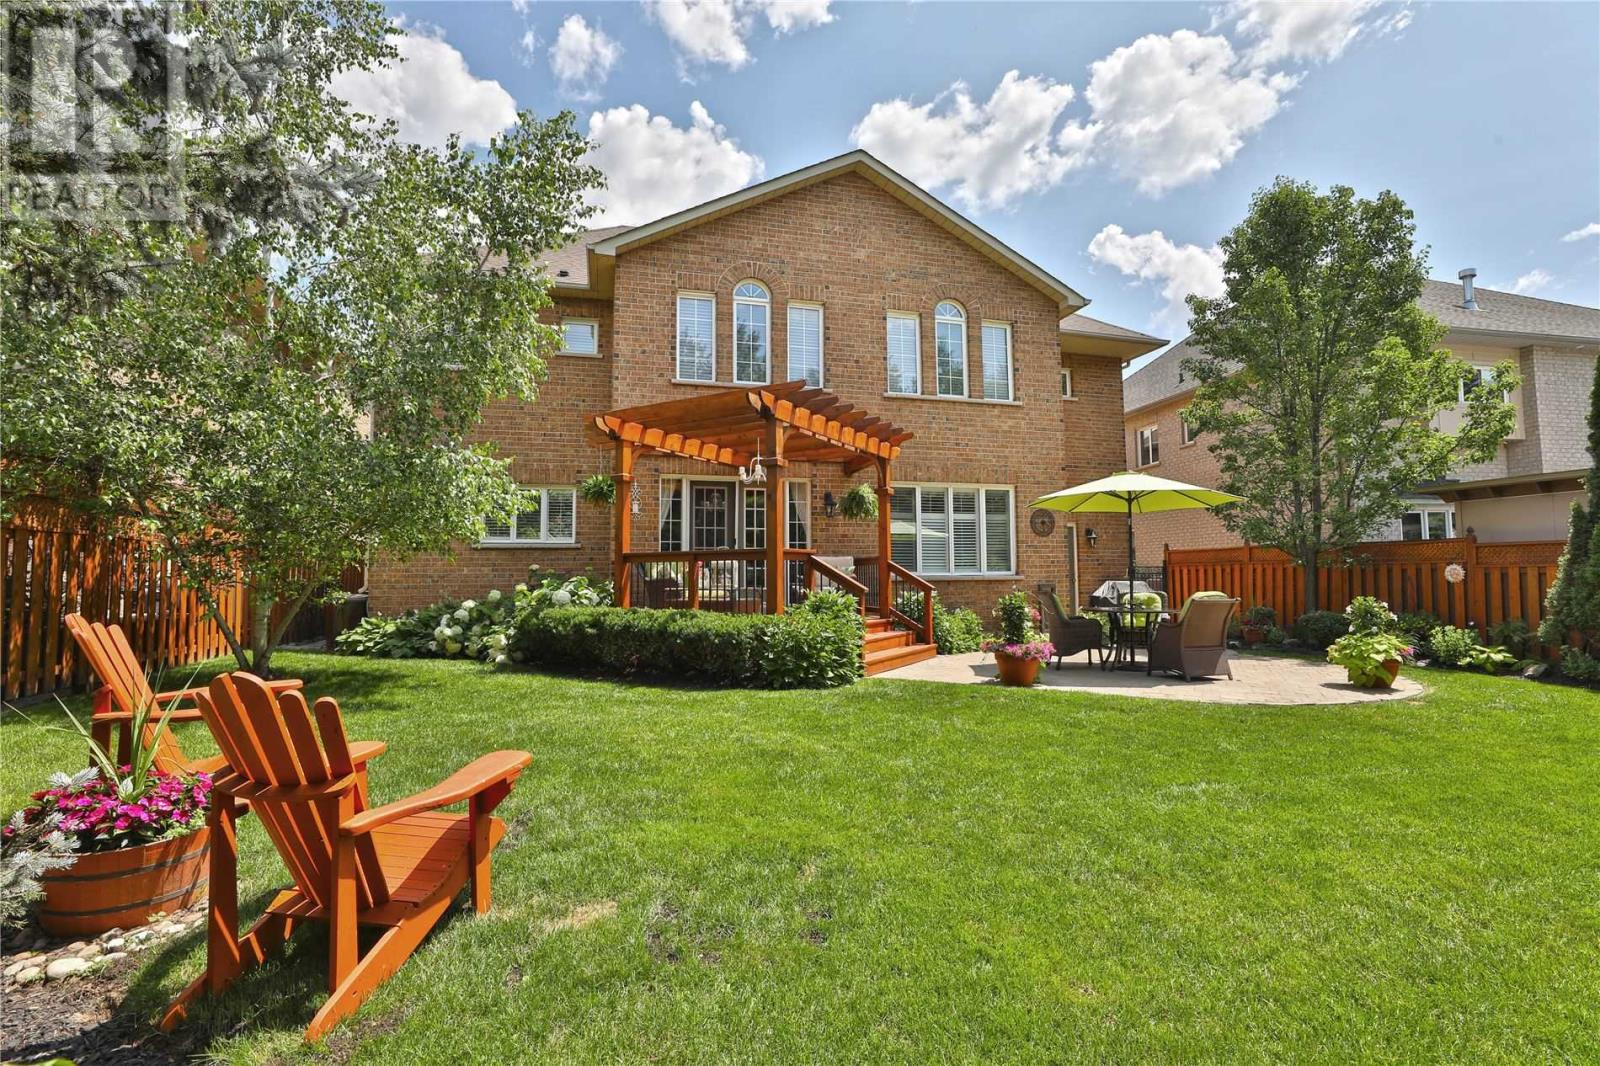 2444 Valley Forest Way, Oakville, Ontario  L6H 6W9 - Photo 20 - W4661371